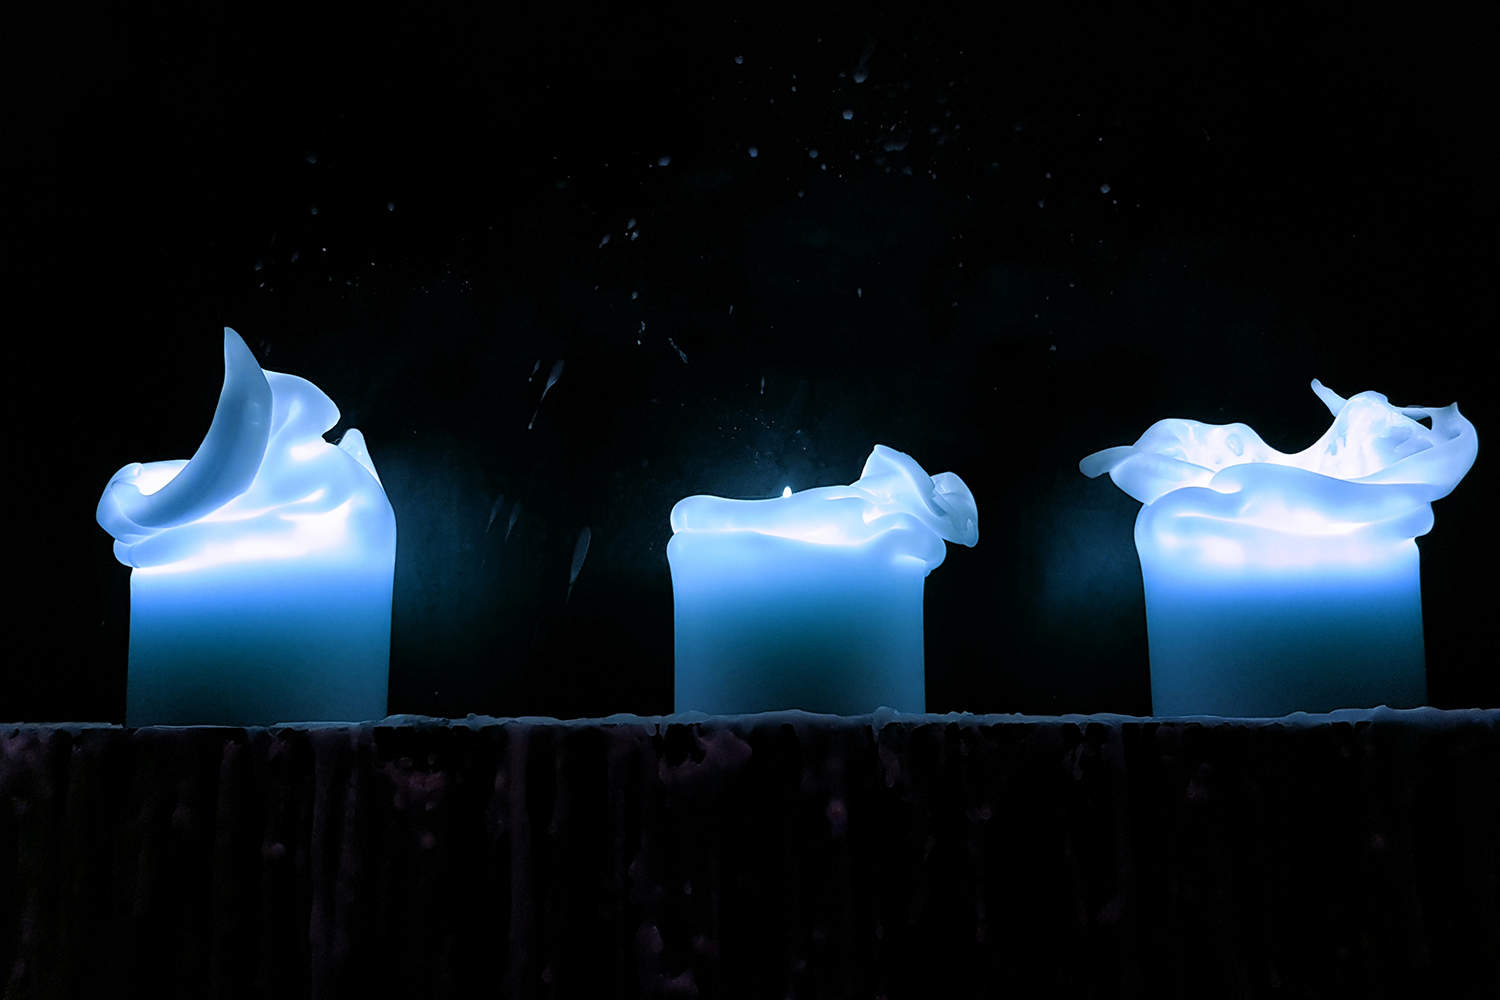 Blue Candle Meaning